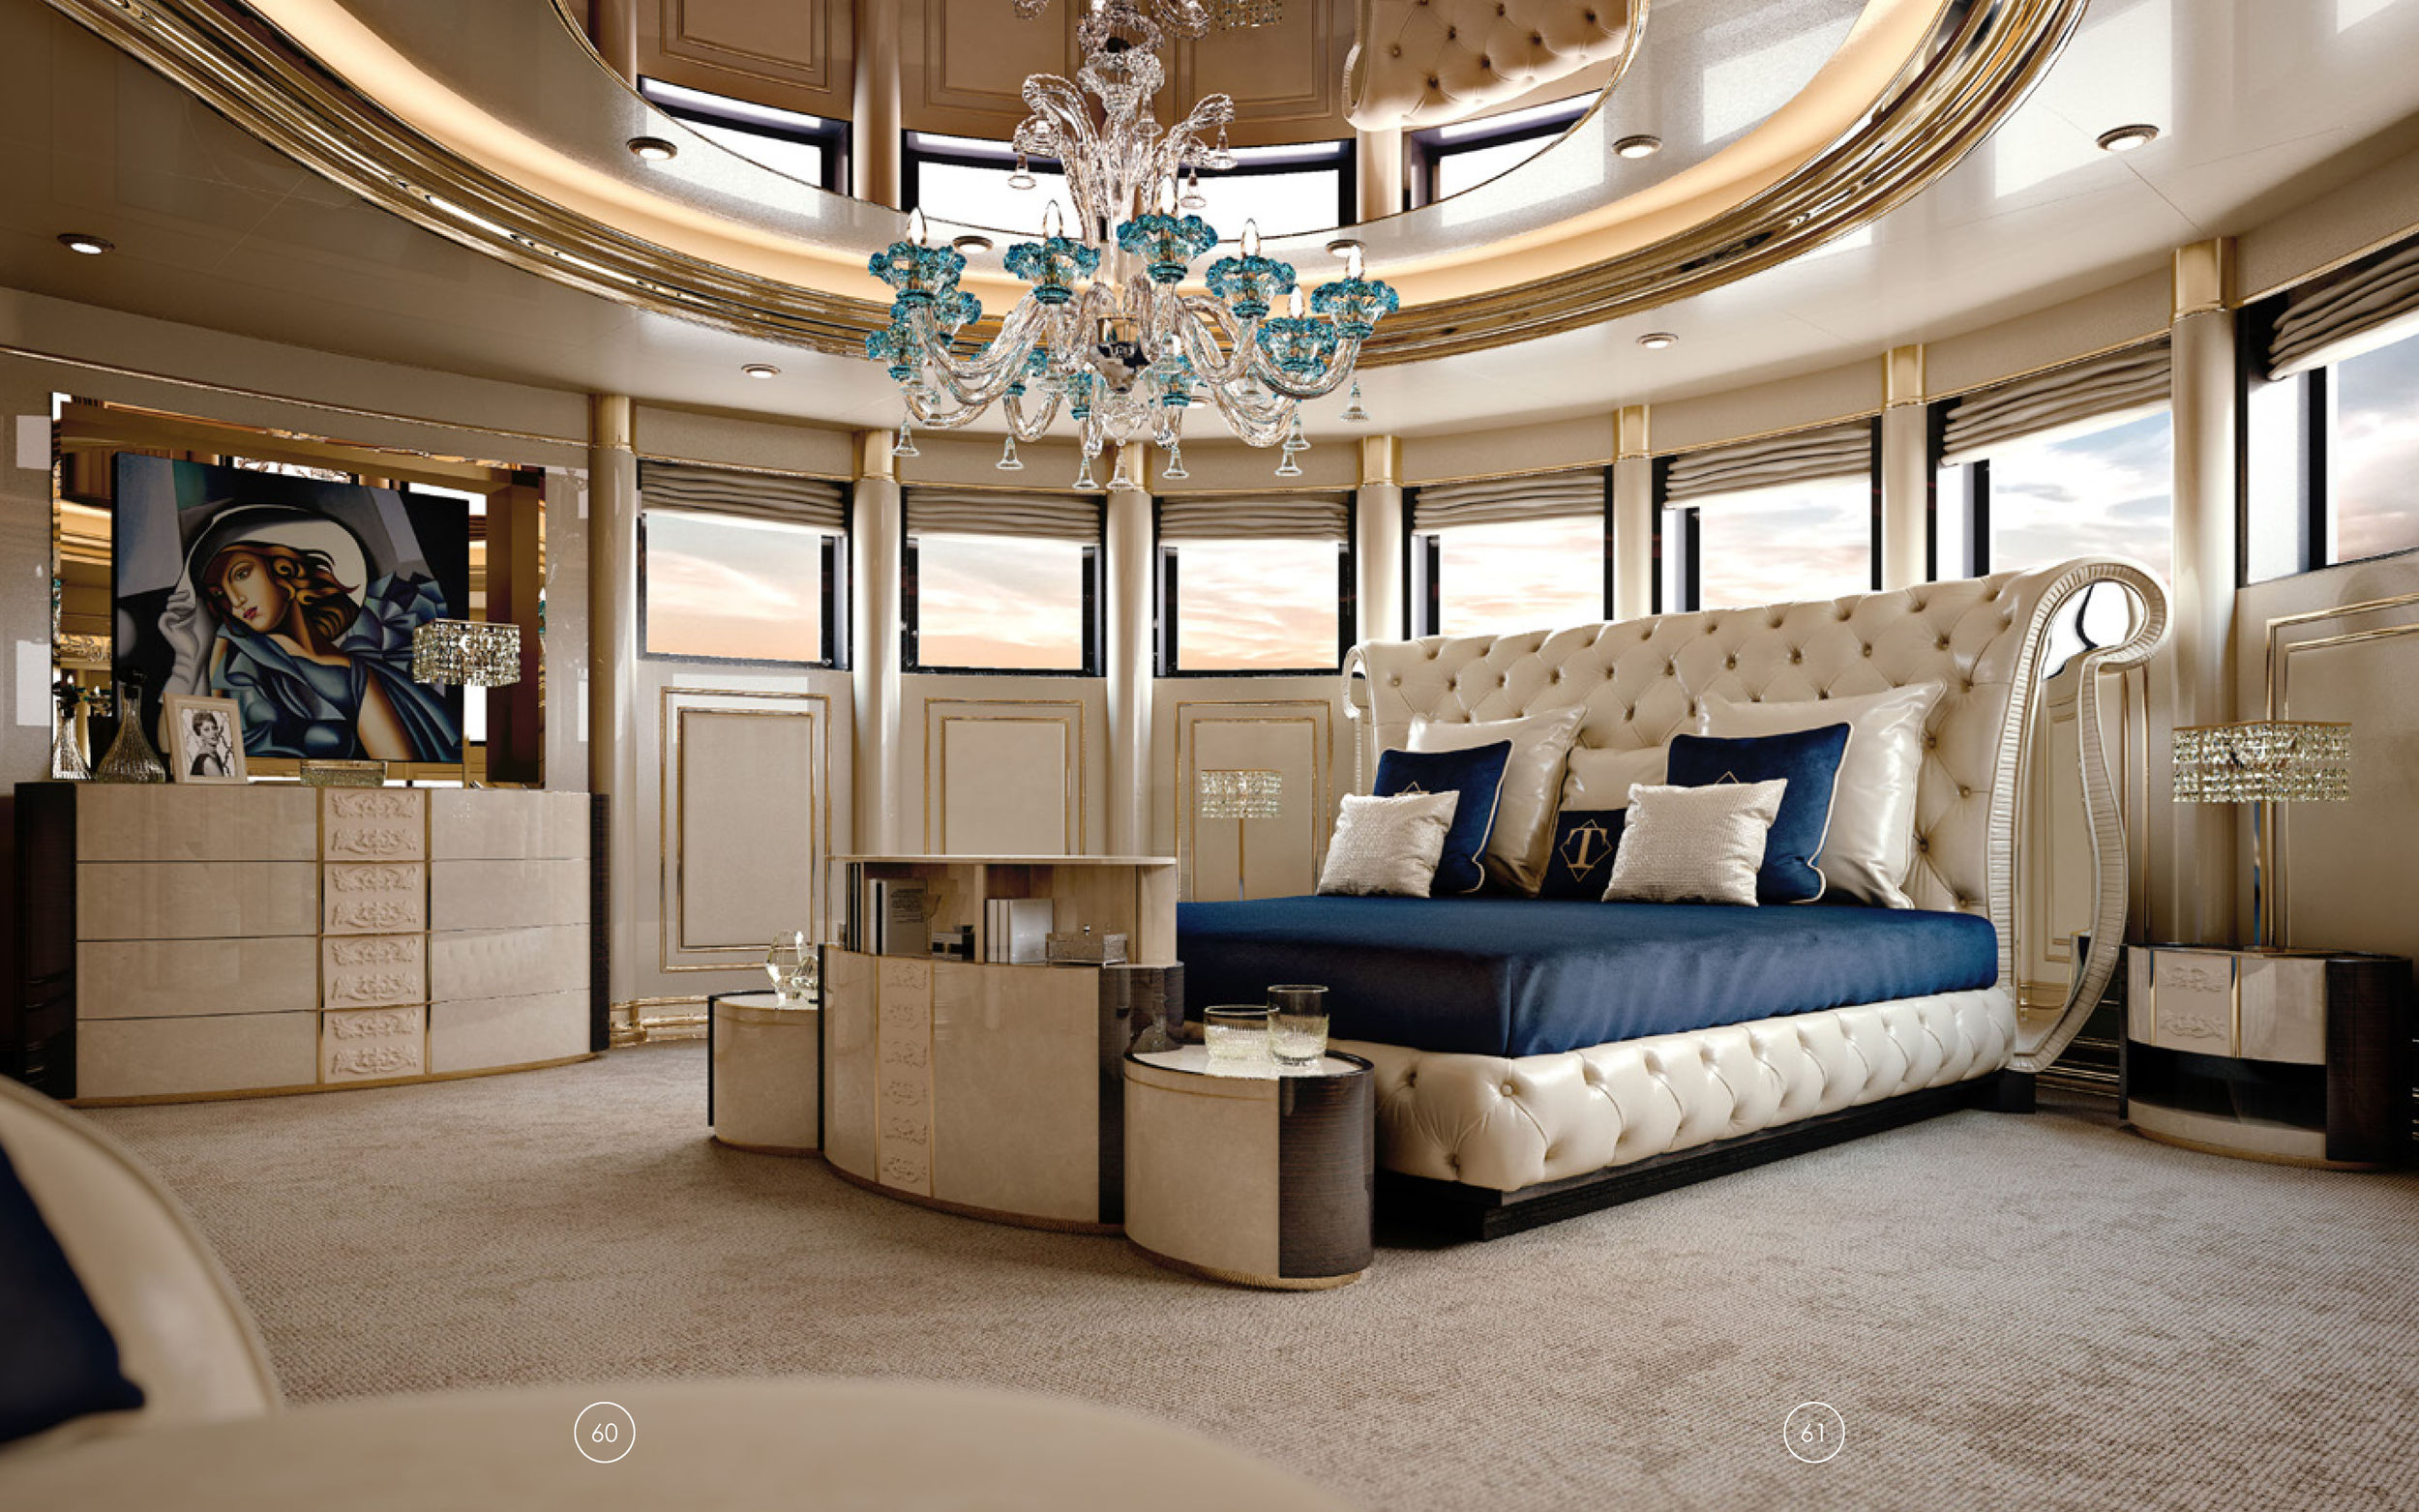 5.0 OCEAN DREAM 2014_megayacht_Страница_32.jpg